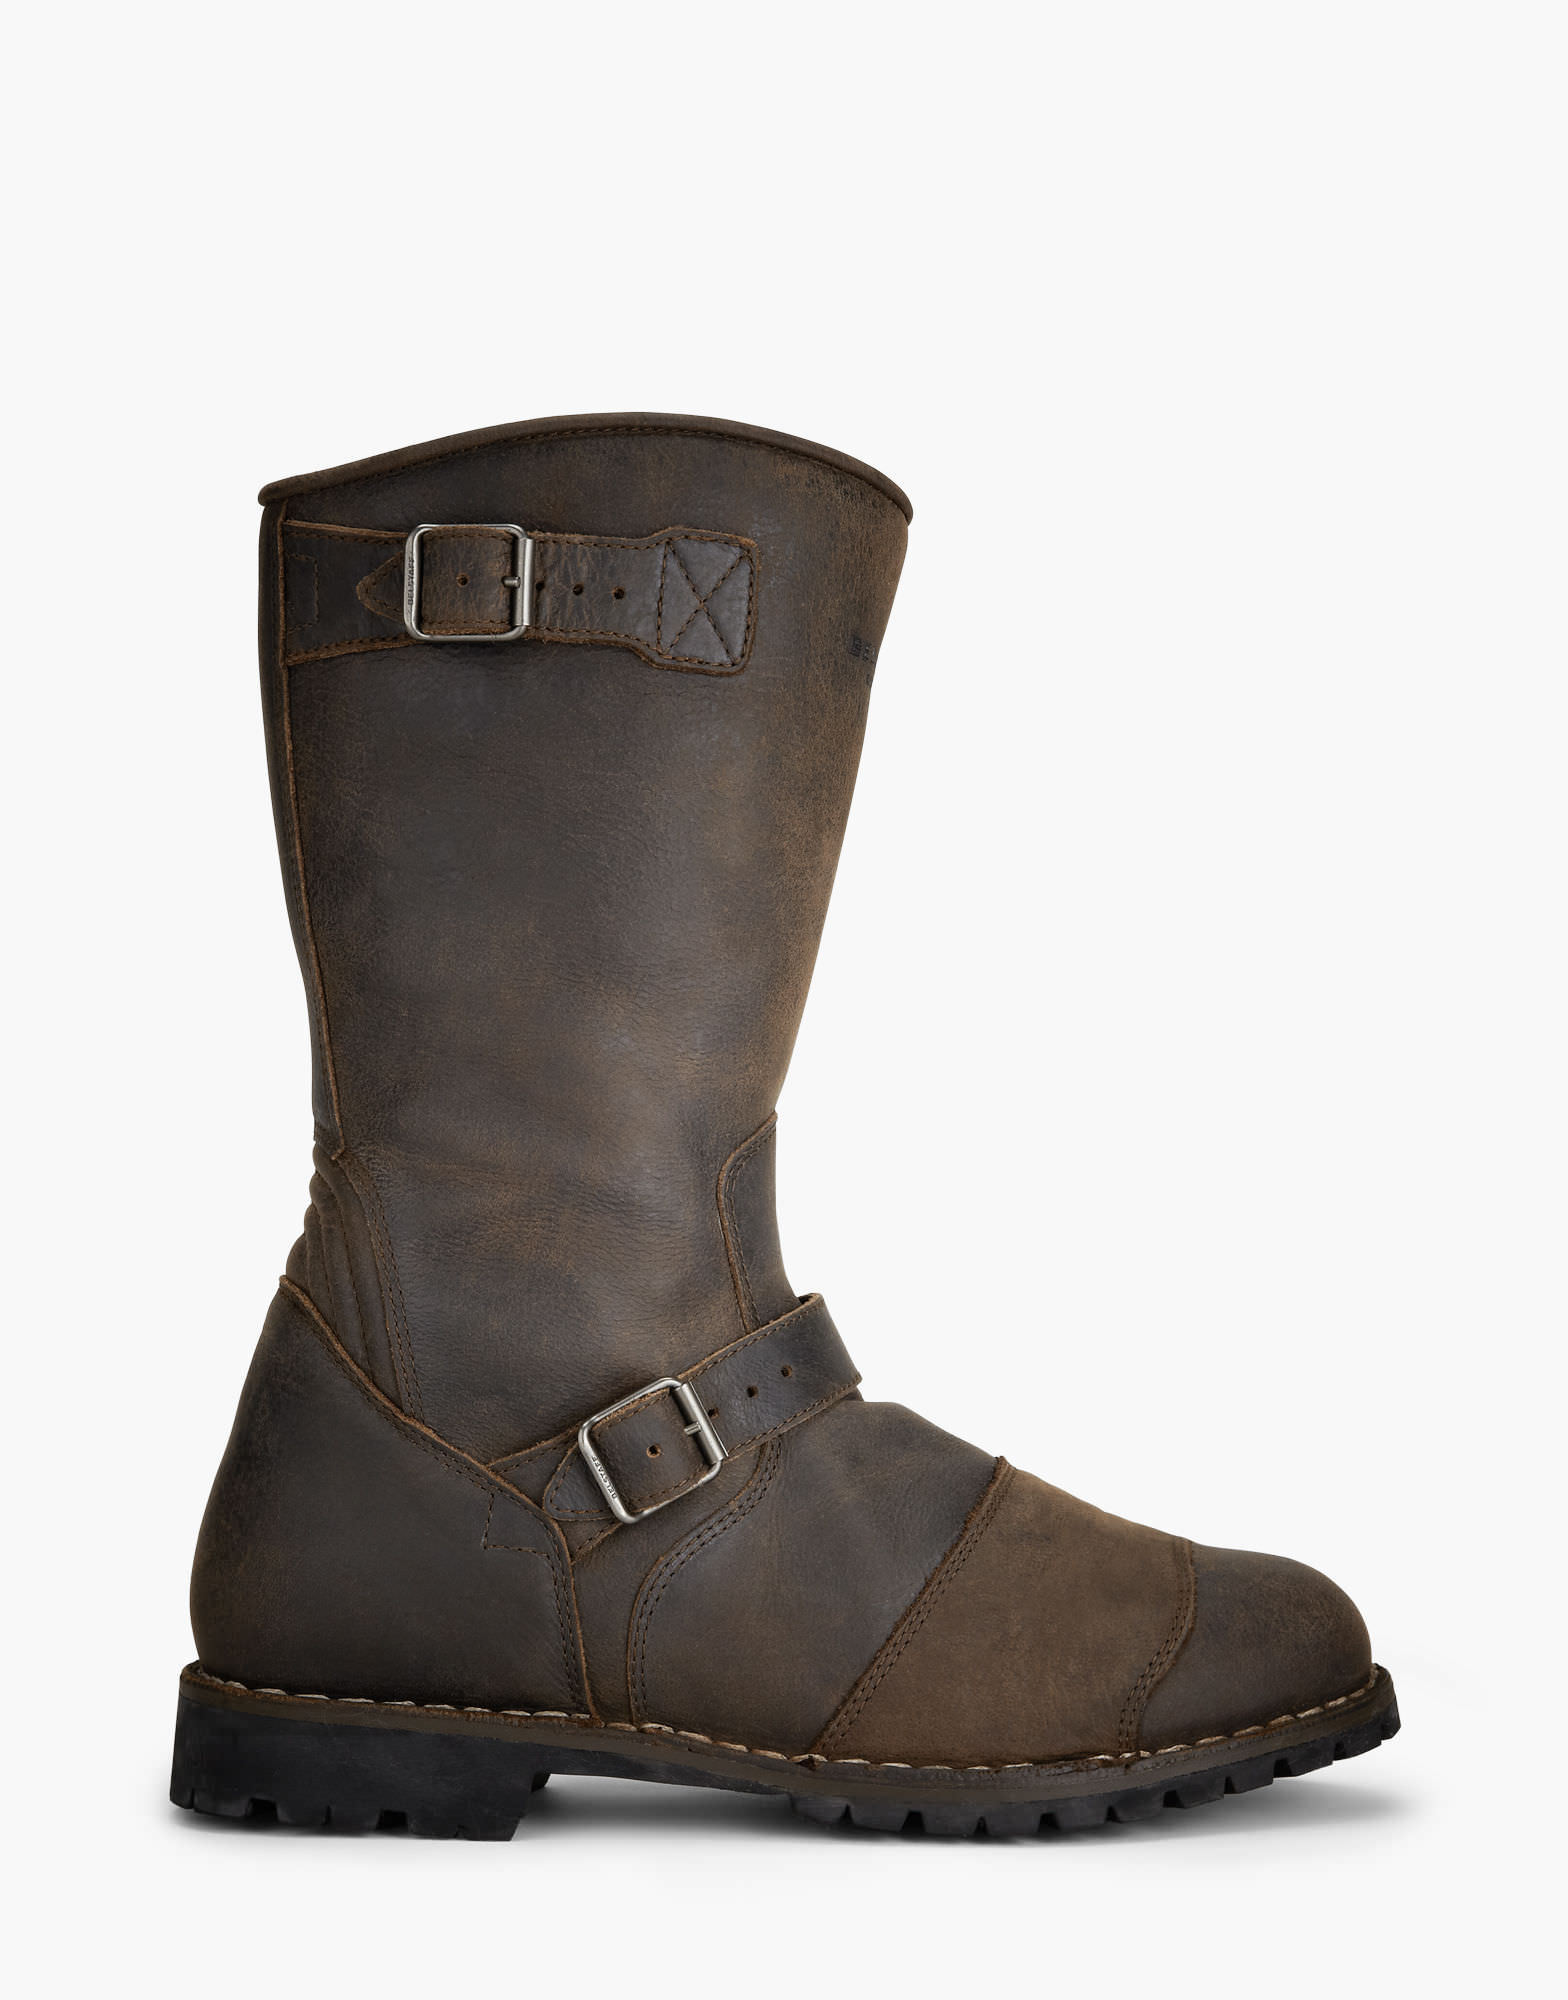 a3db6b3b49 Belstaff Endurance Boots - Made From Water-Repellent Buffalo Leather